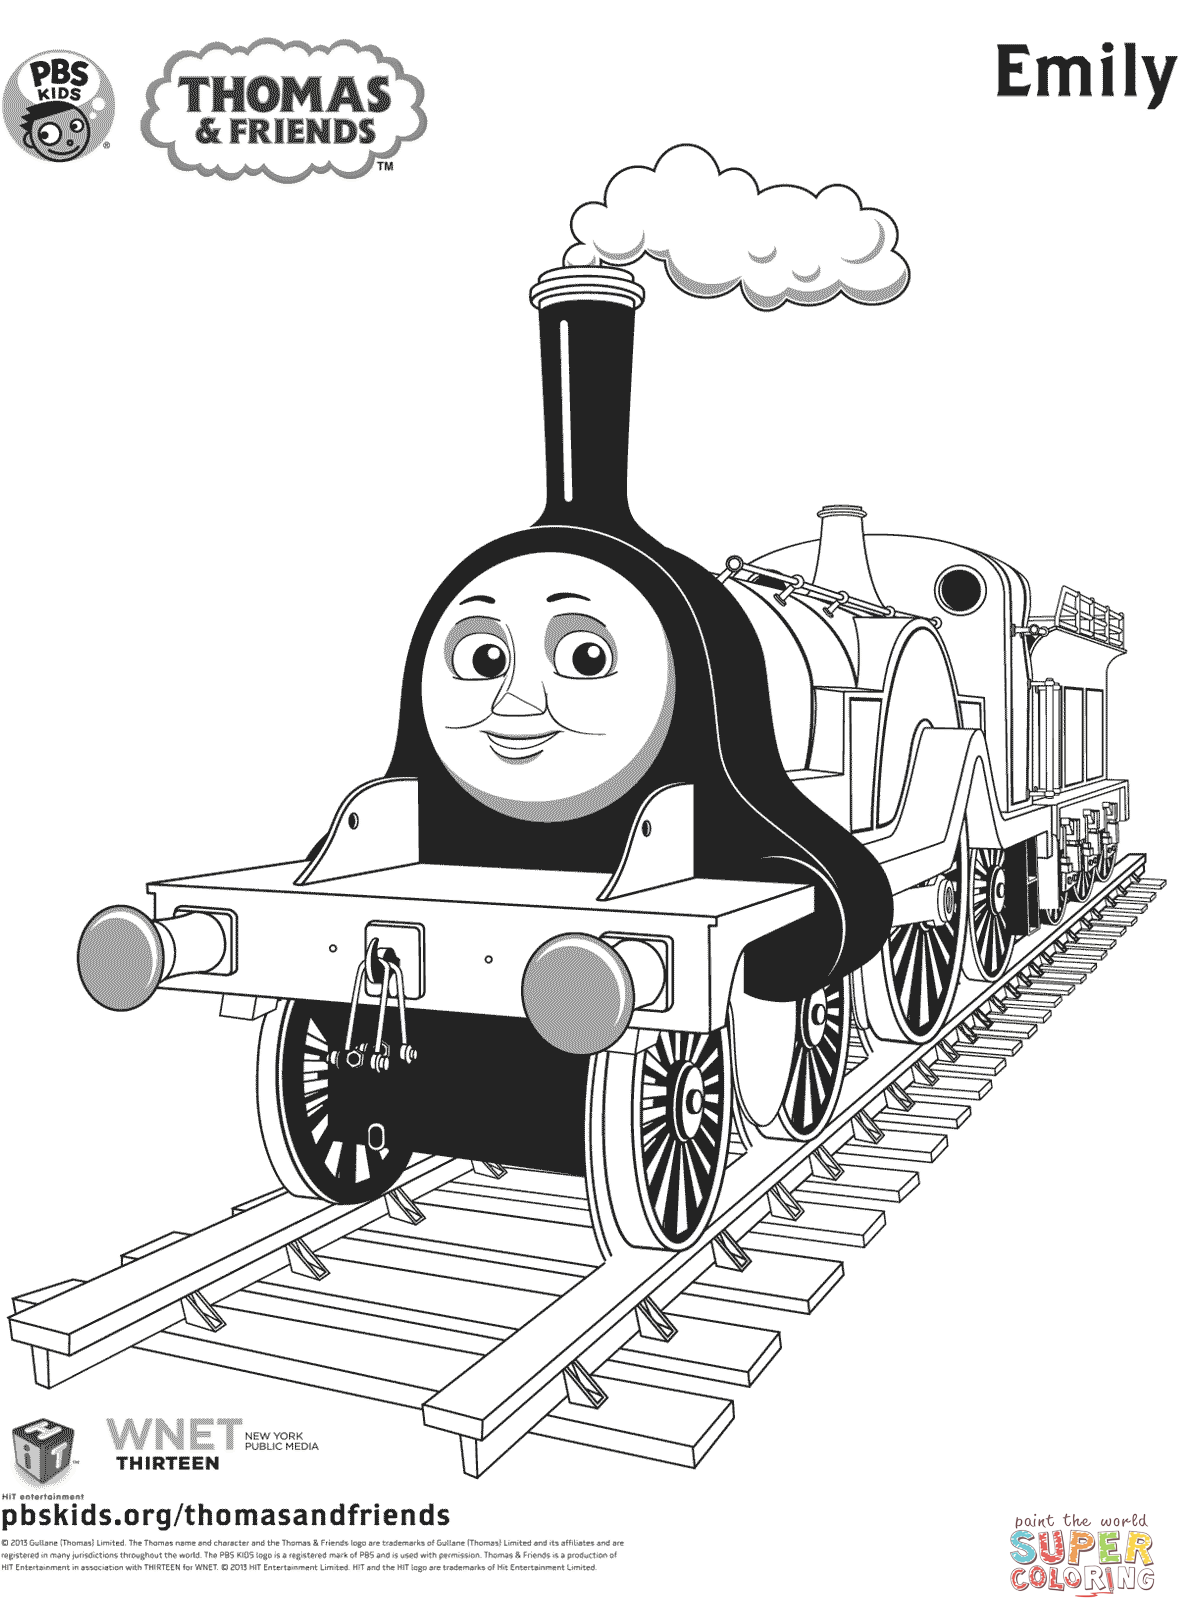 thomas and friends coloring sheets thomas and friends coloring pages baggage for kids sheets and thomas friends coloring